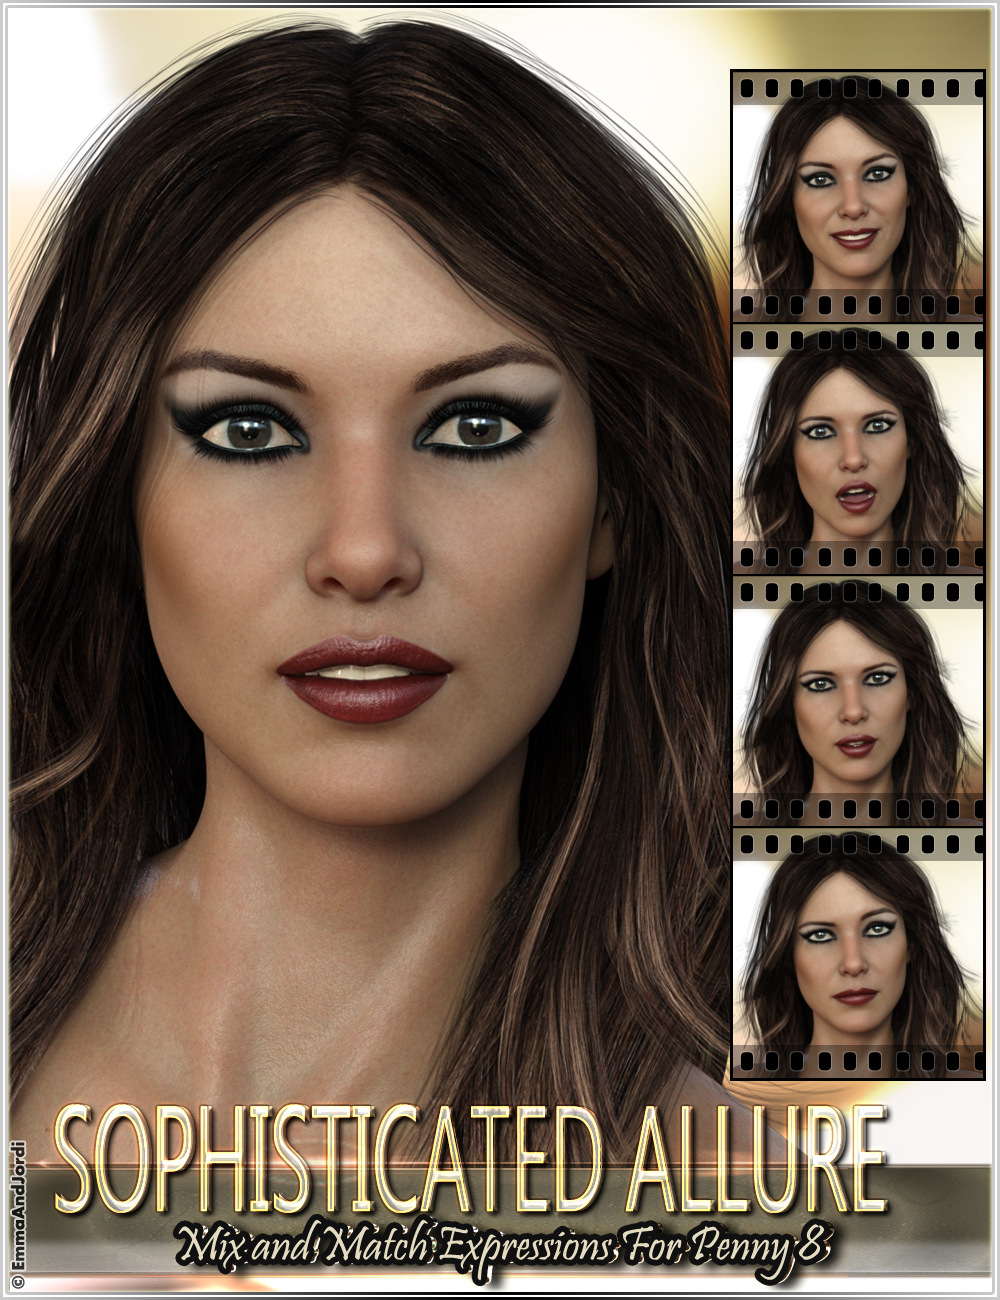 Sophisticated Allure Mix and Match Expressions for Penny 8 and Genesis 8 Female(s) by: EmmaAndJordi, 3D Models by Daz 3D